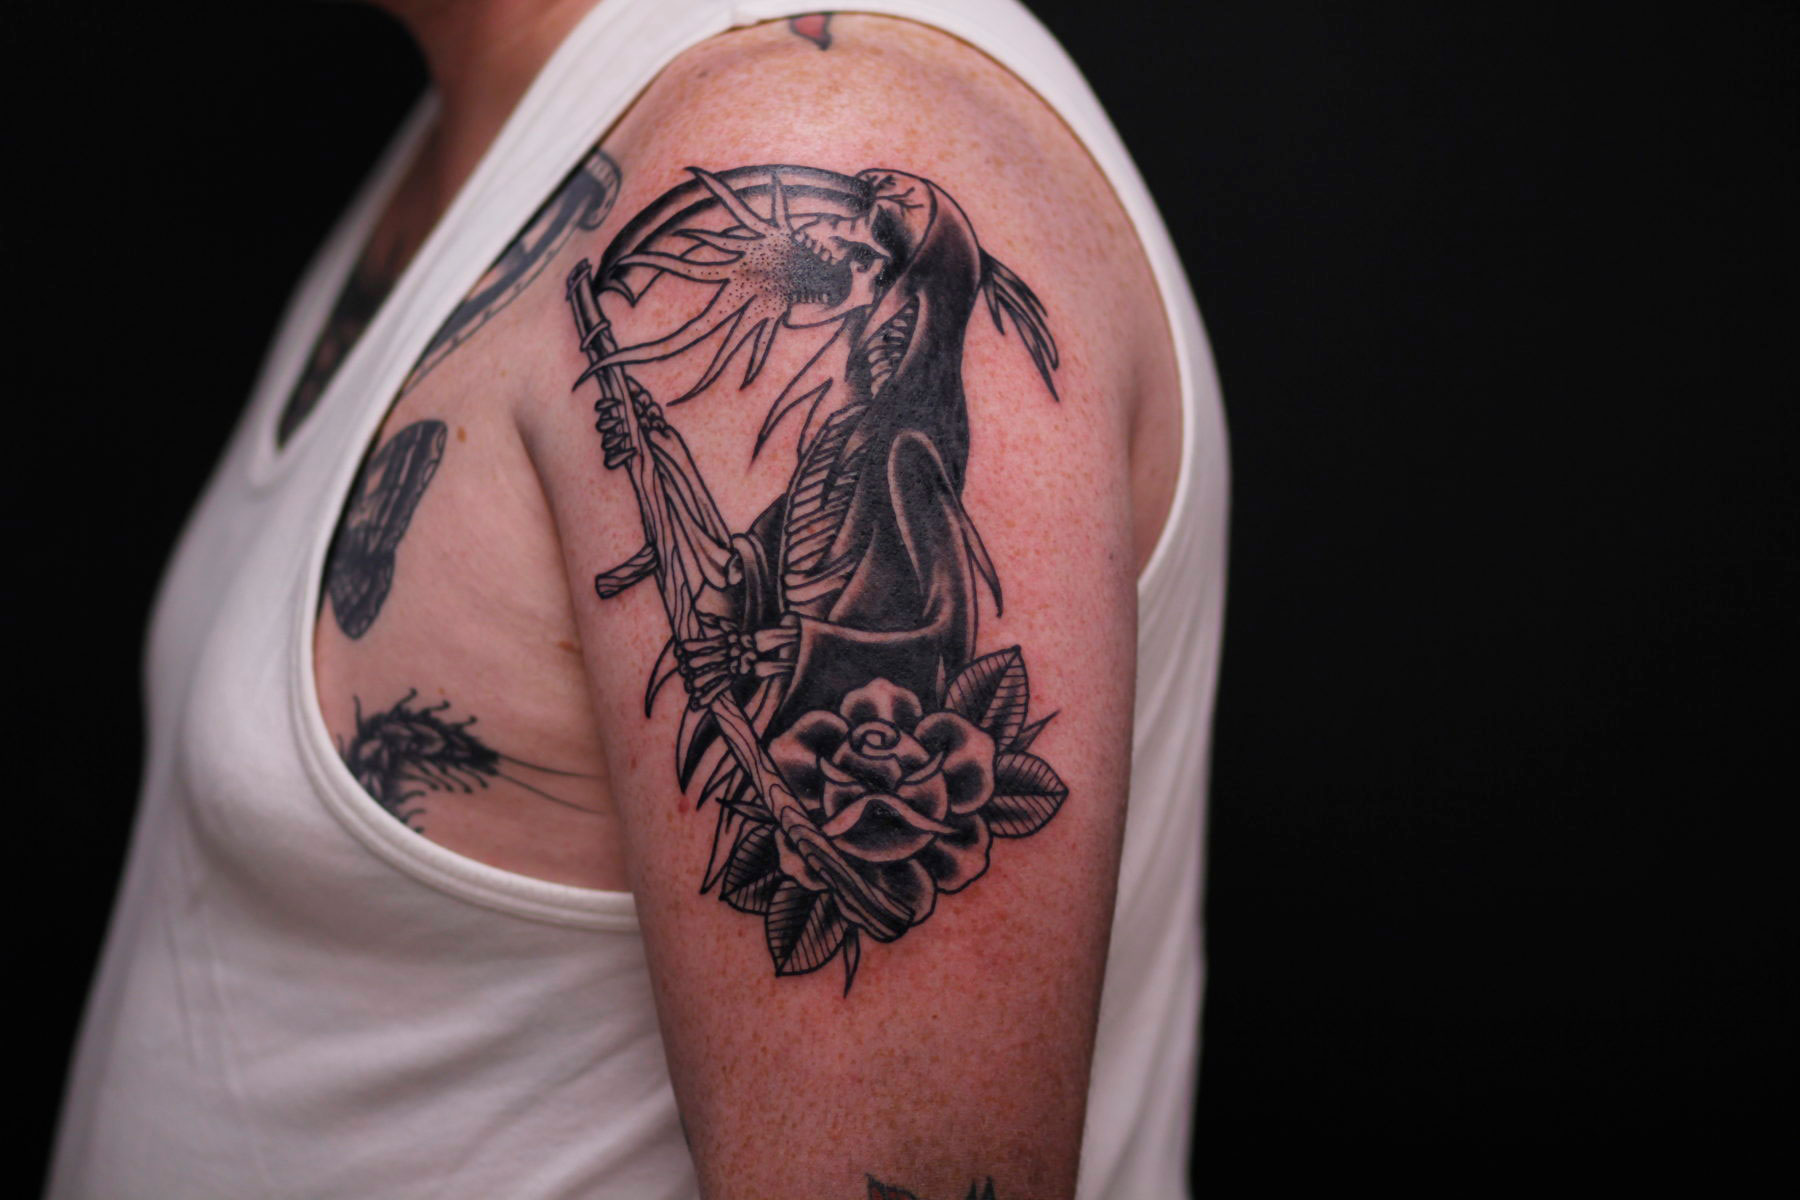 traditional blackwork grim reaper tattoo with his scythe going through his face and flames coming out, traditional rose below